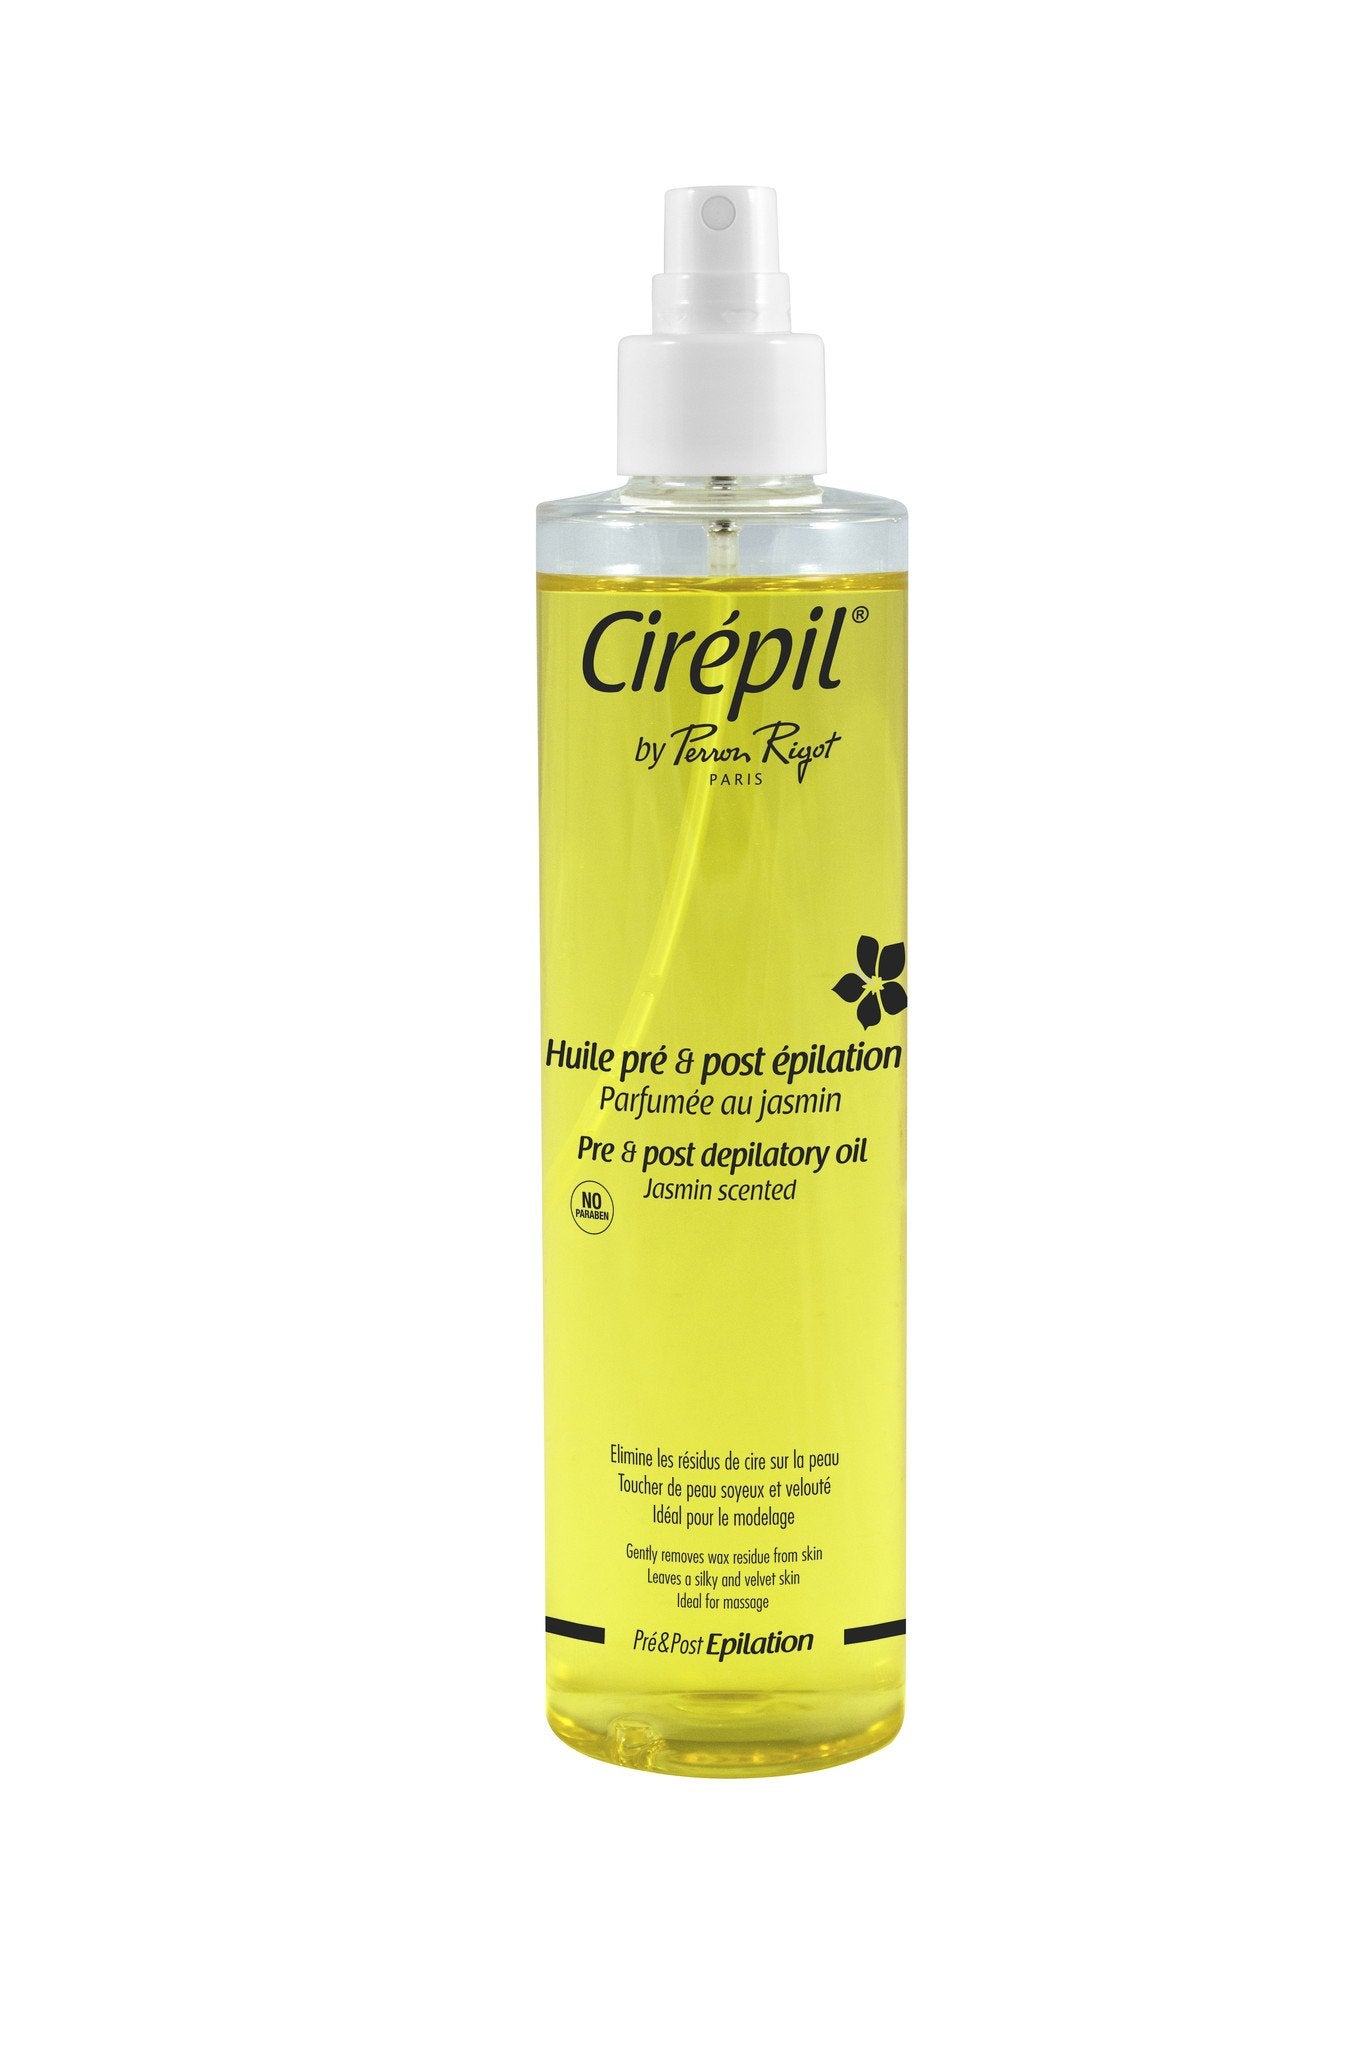 Cirepil Pre-Depilatory Oil - Paraben Free Jasmine Scented